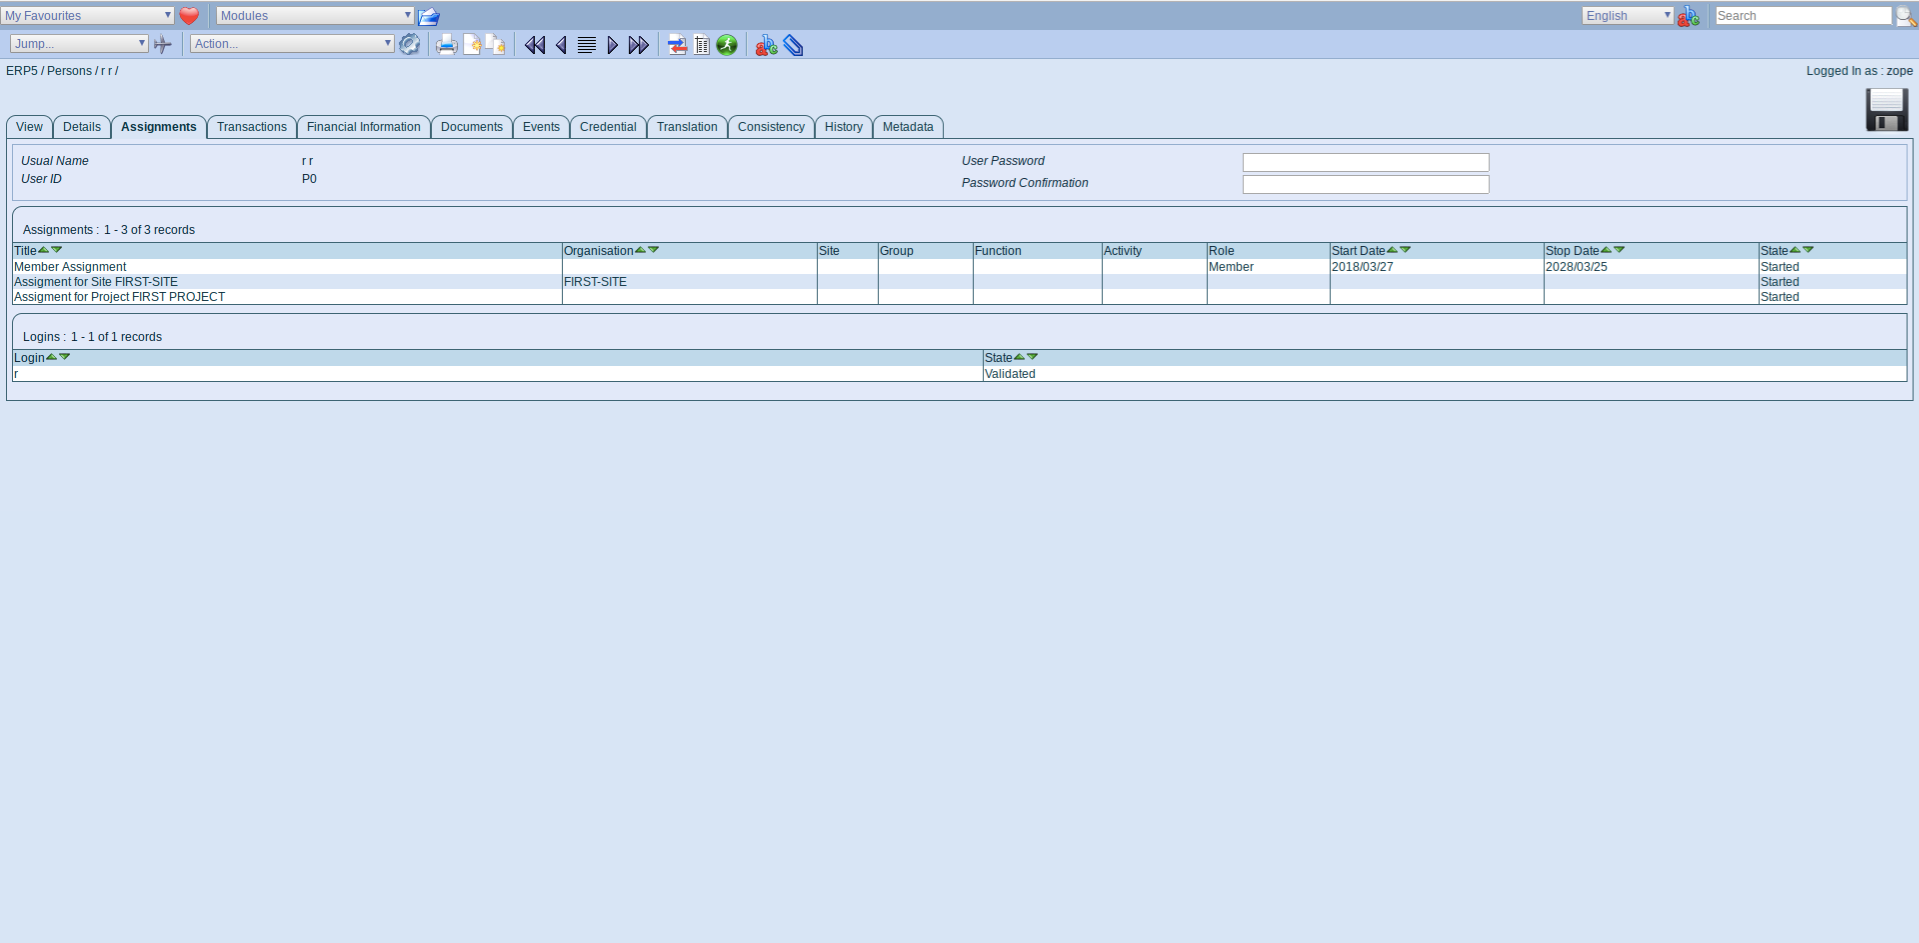 ERP5 Interface - Assignments Tab